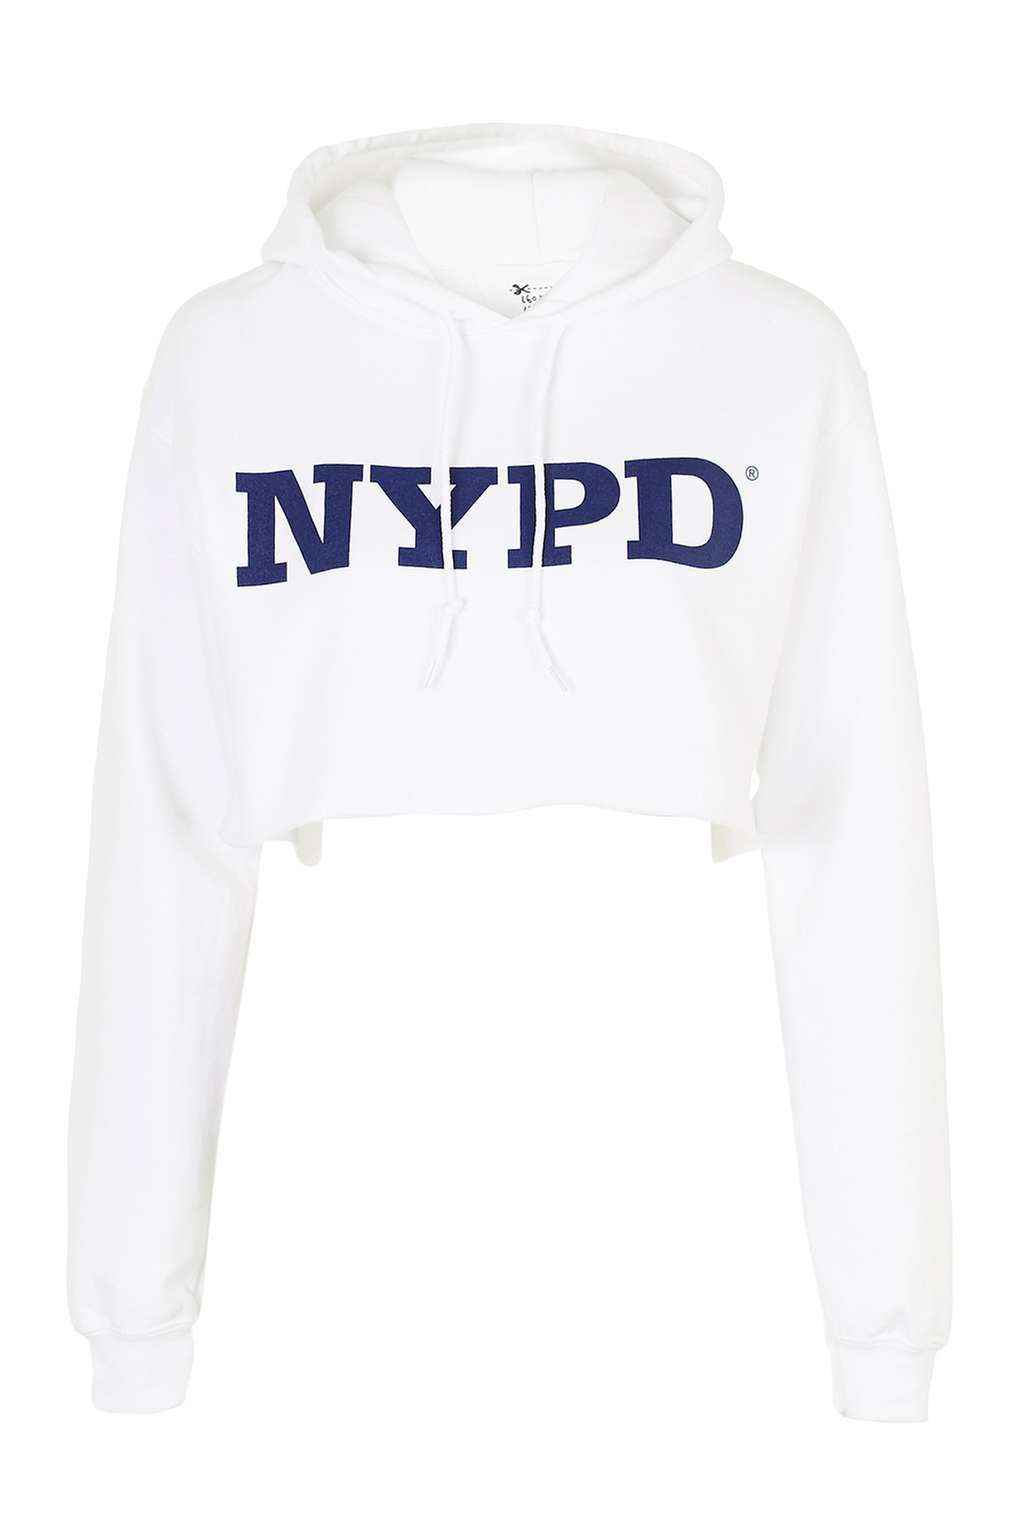 Nypd Hoodie Tee And Cake